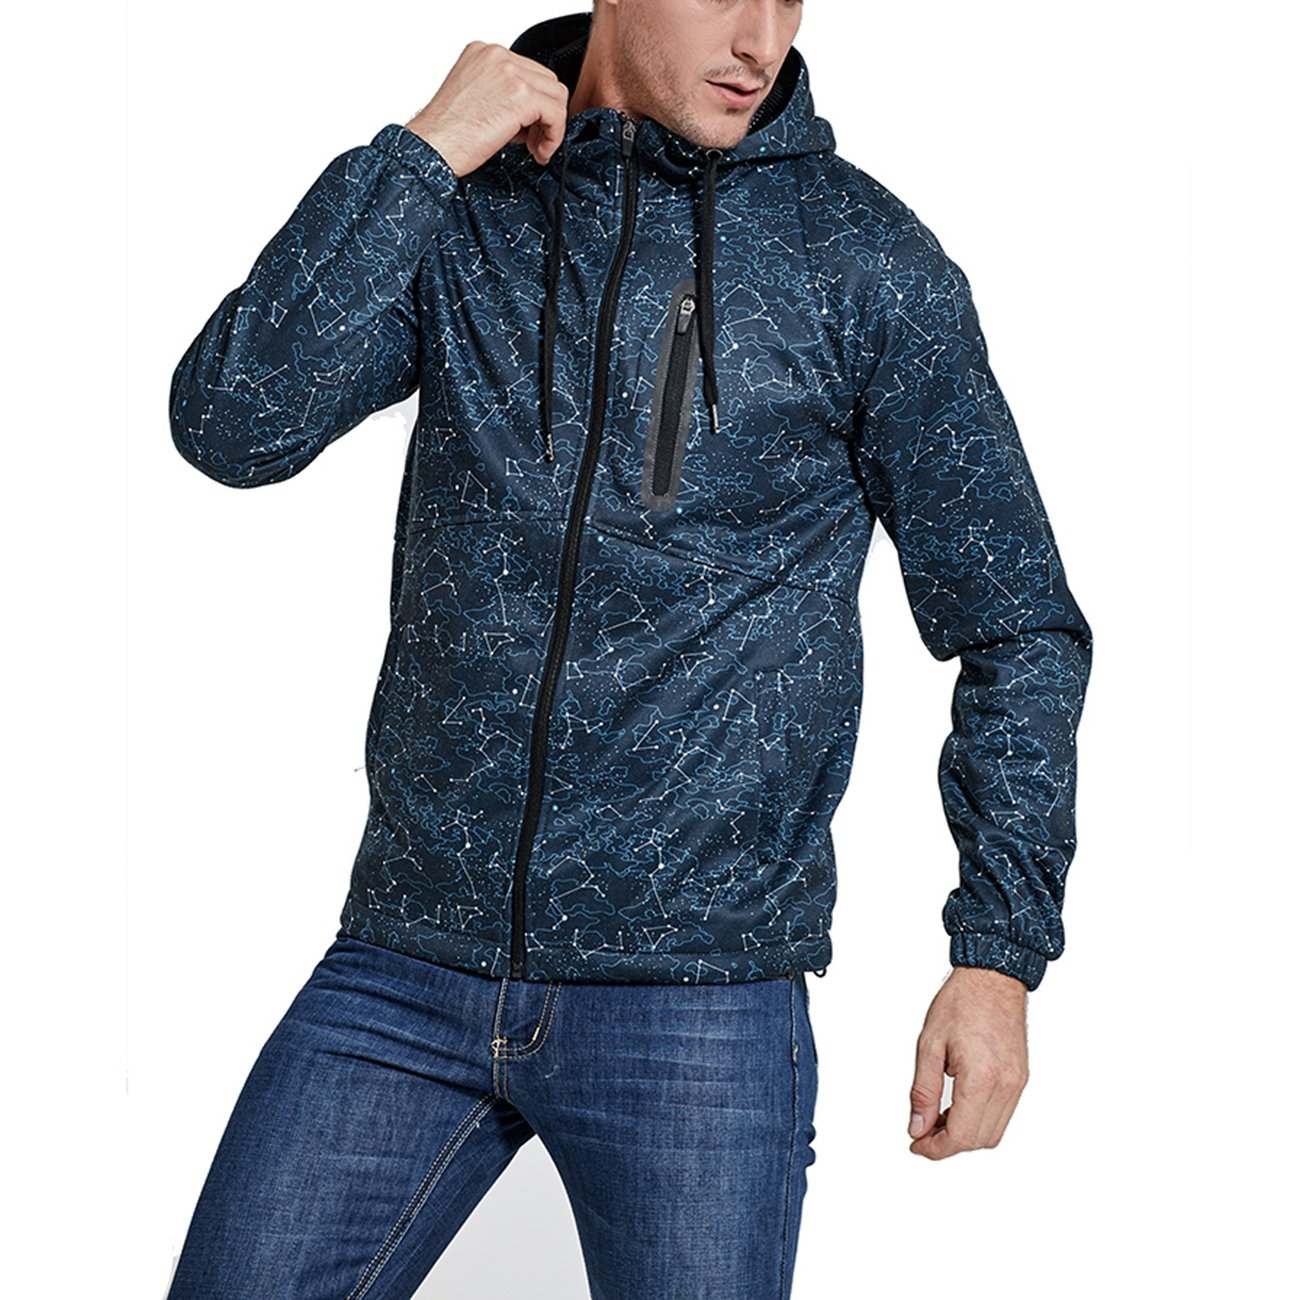 SEVENWELL Men Active Performance Zipper Hoodie Graphic Printed Multi-Pockets Travel Hoodie Jacket with Hood Gym Workout Technical Zip up Sweatshirt Hoodie Blue S